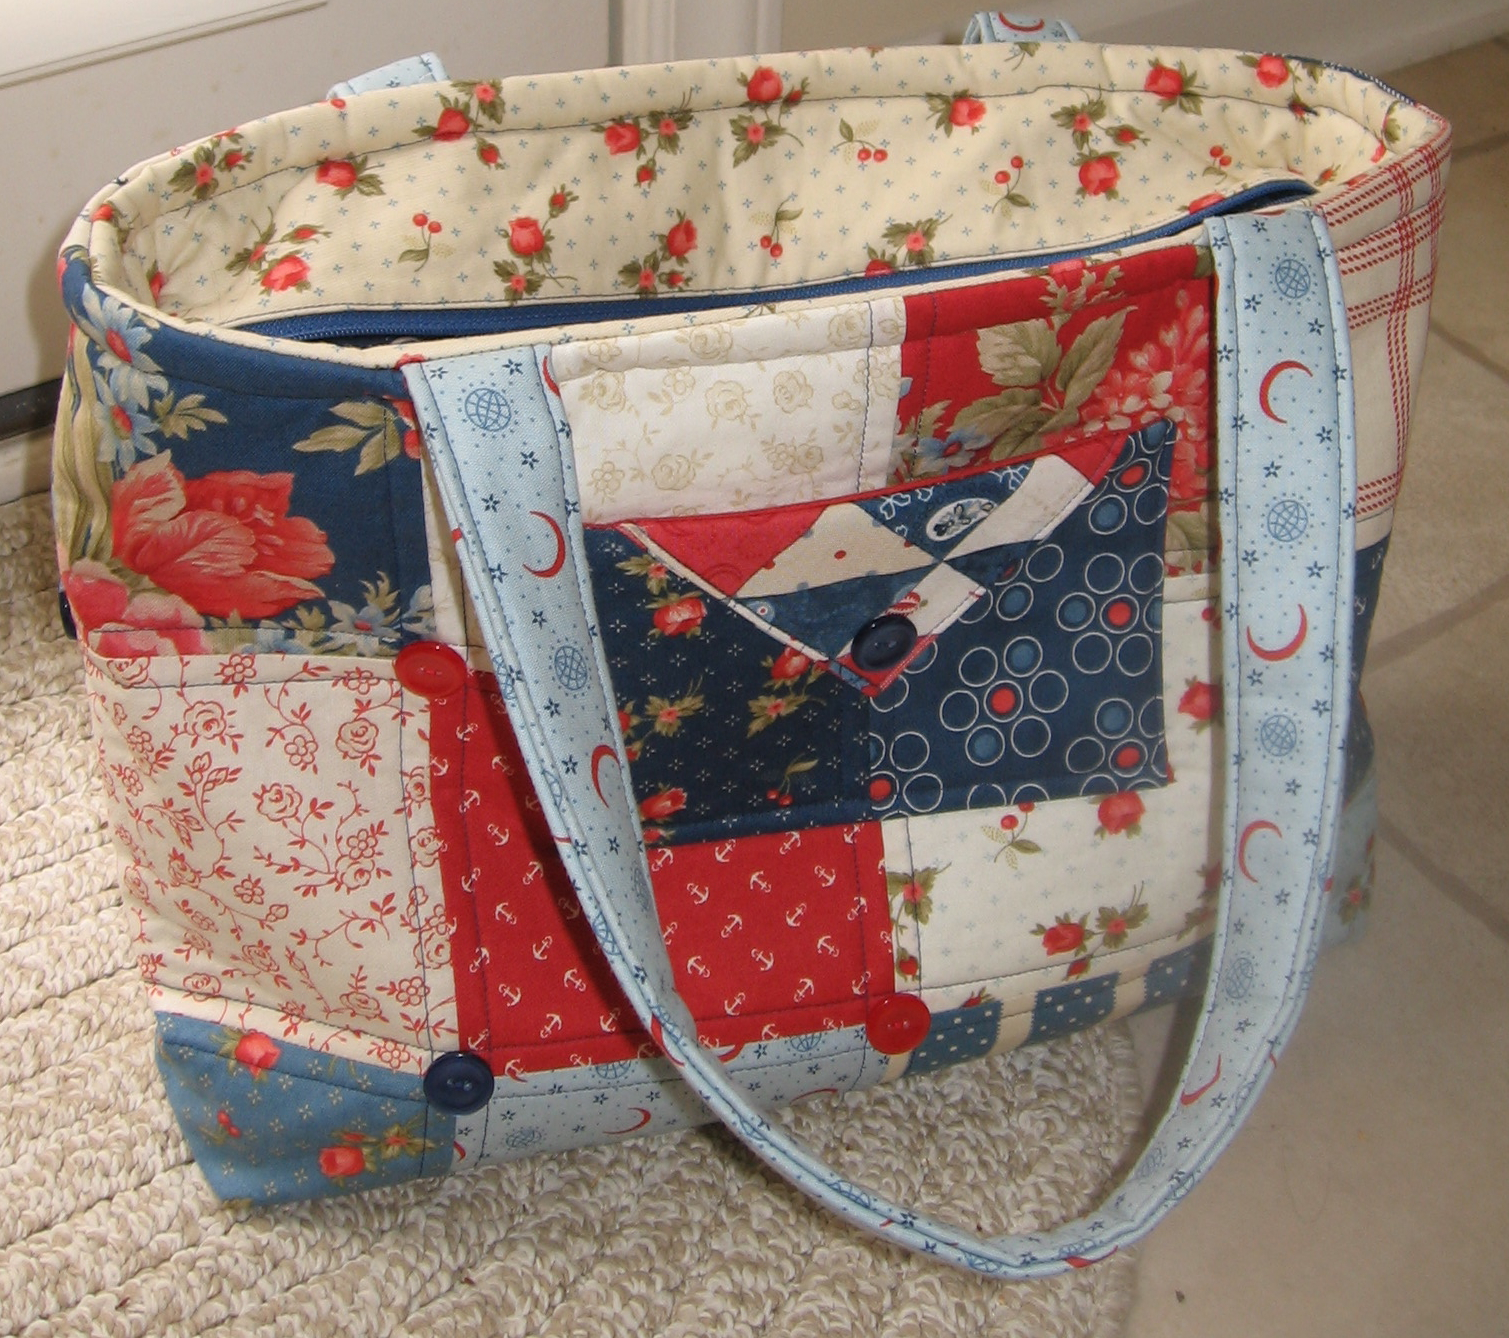 how to make a tote bag with a zipper EvLQ5J9S